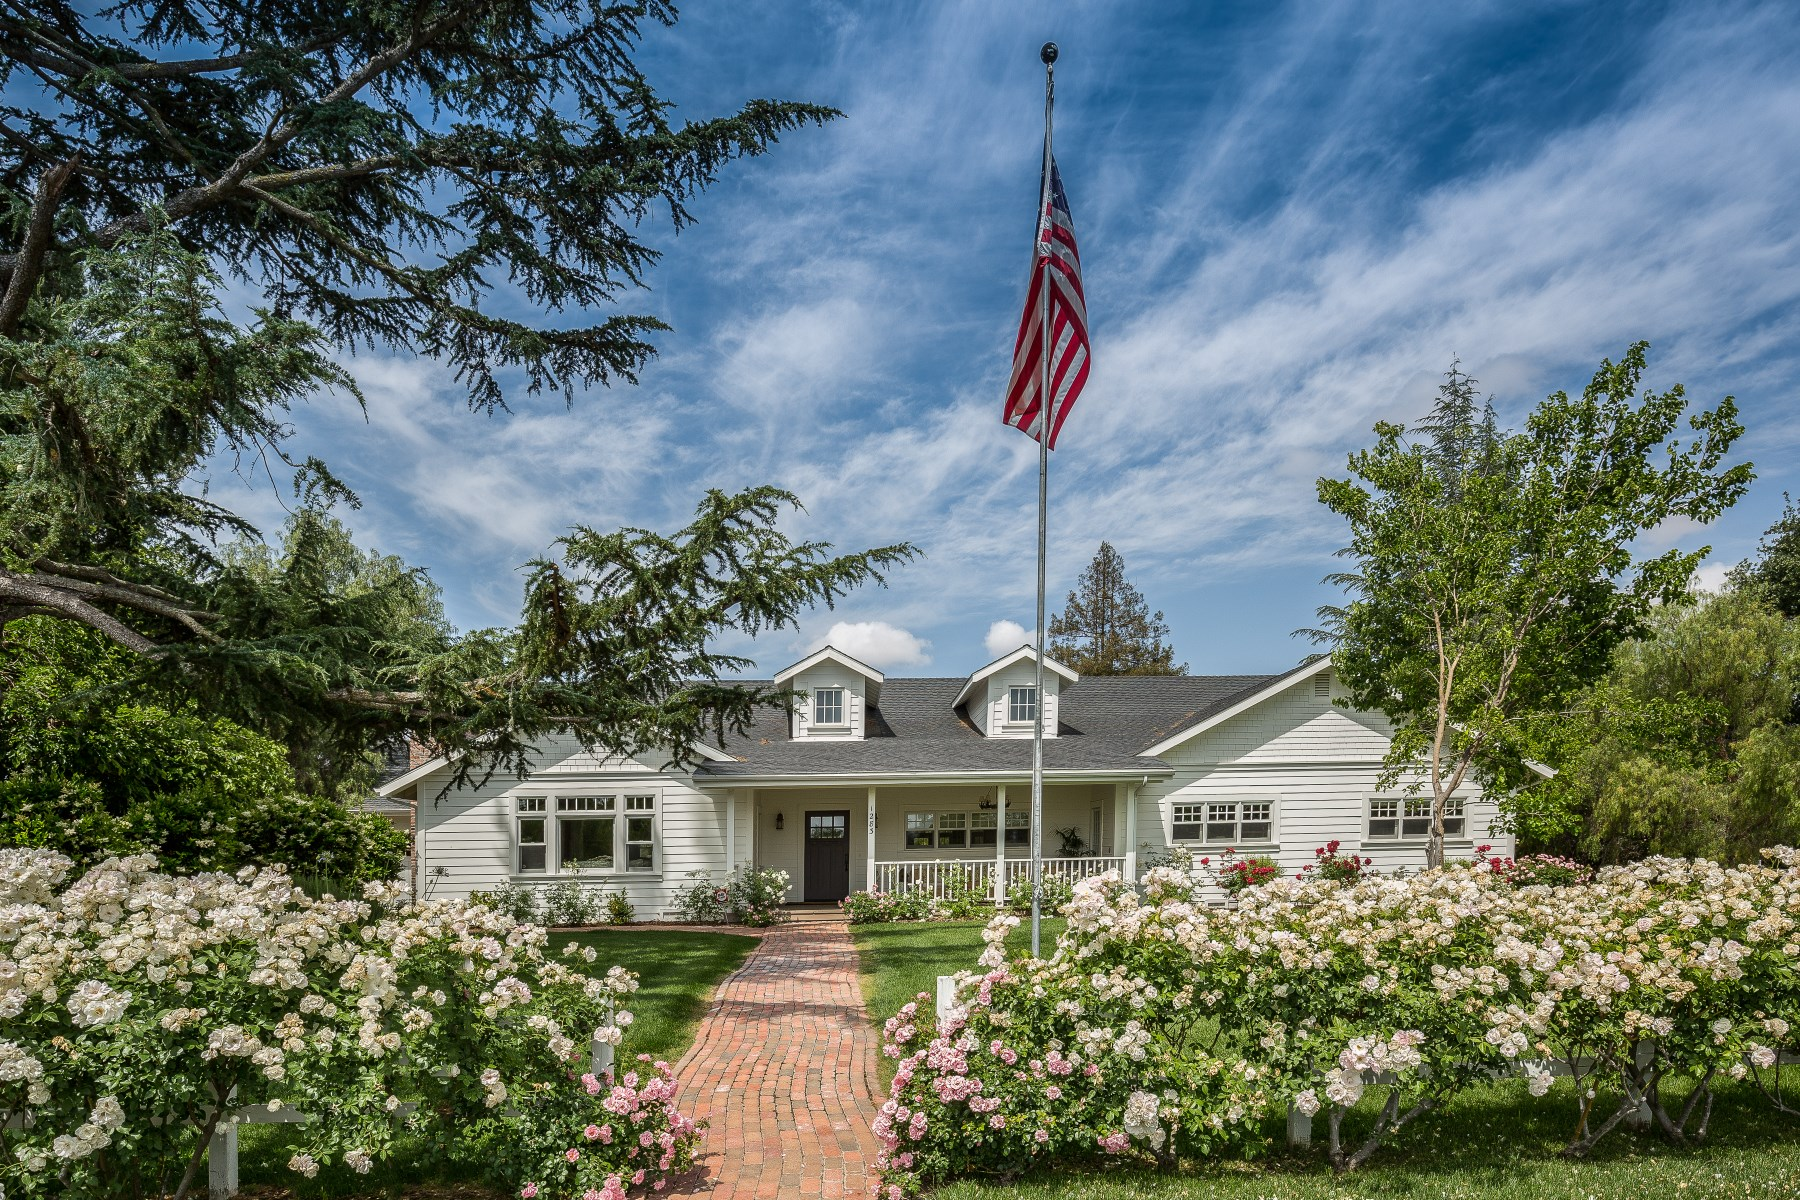 Single Family Home for Sale at Skyline Park Beauty 1283 Highland Road Santa Ynez, California 93460 United States